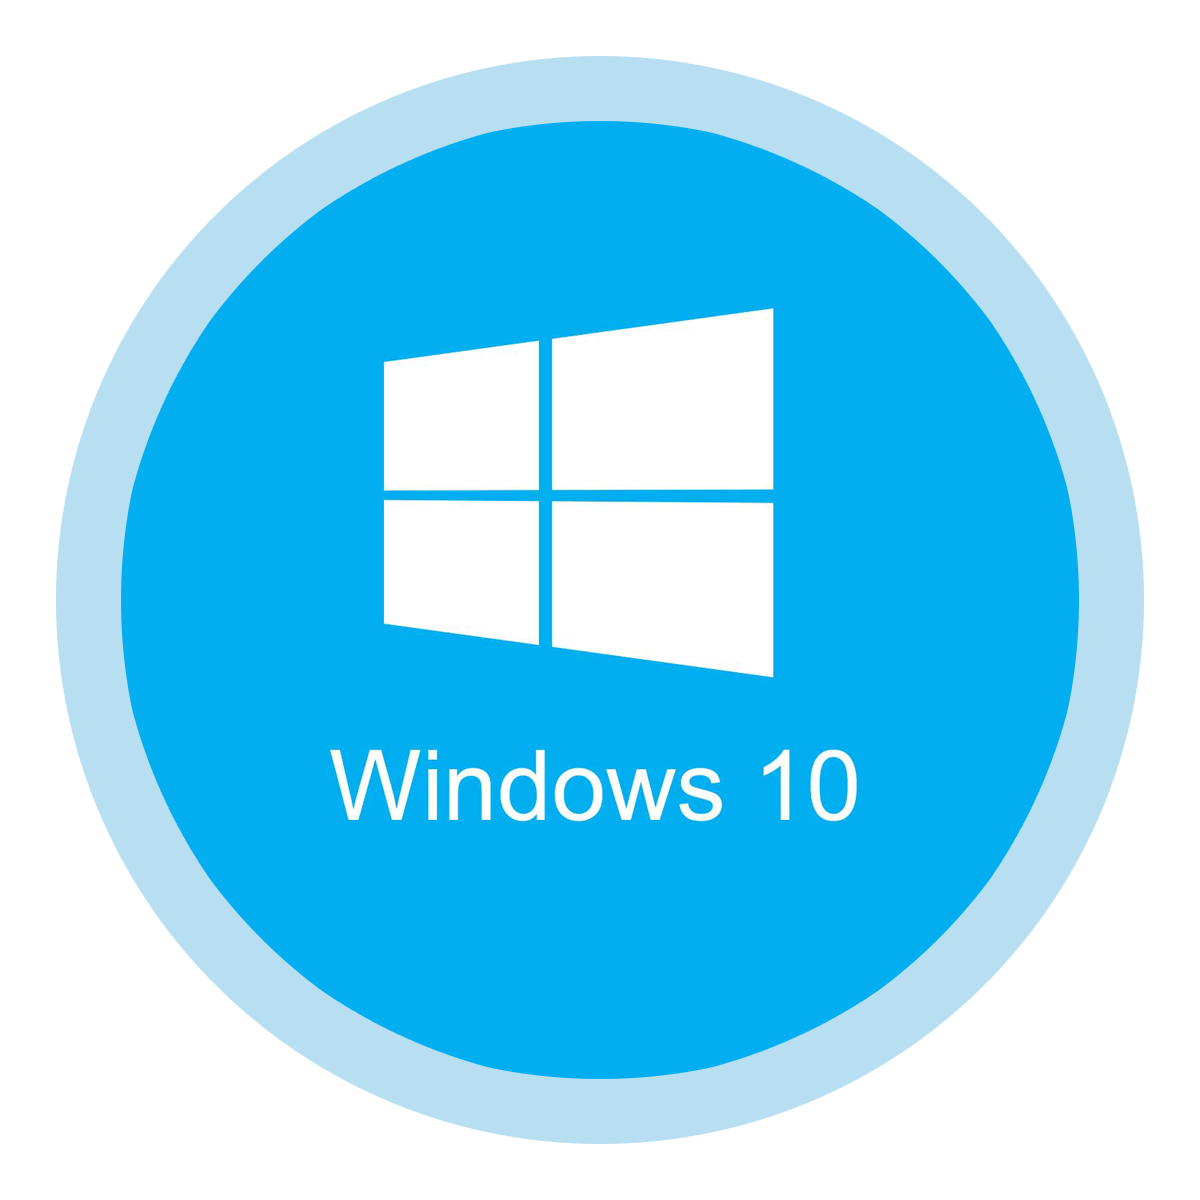 Windows transparent 10. Png free download image